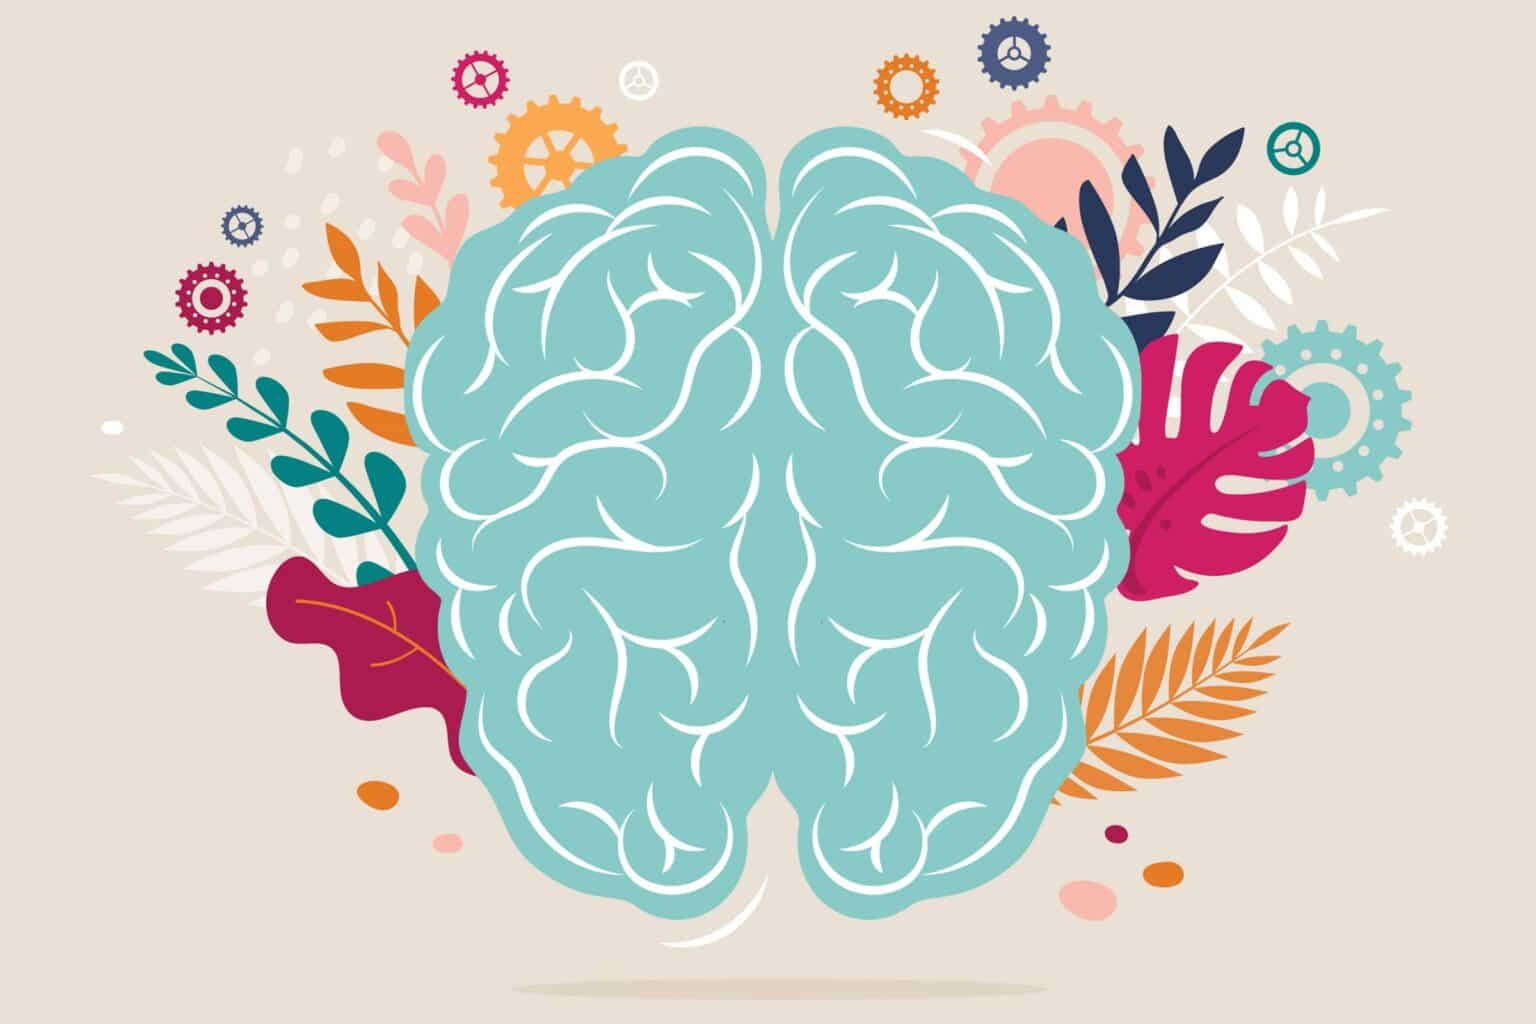 Decorative image of colorful brain and blooming images of leaves and flowers bursting from the sides.